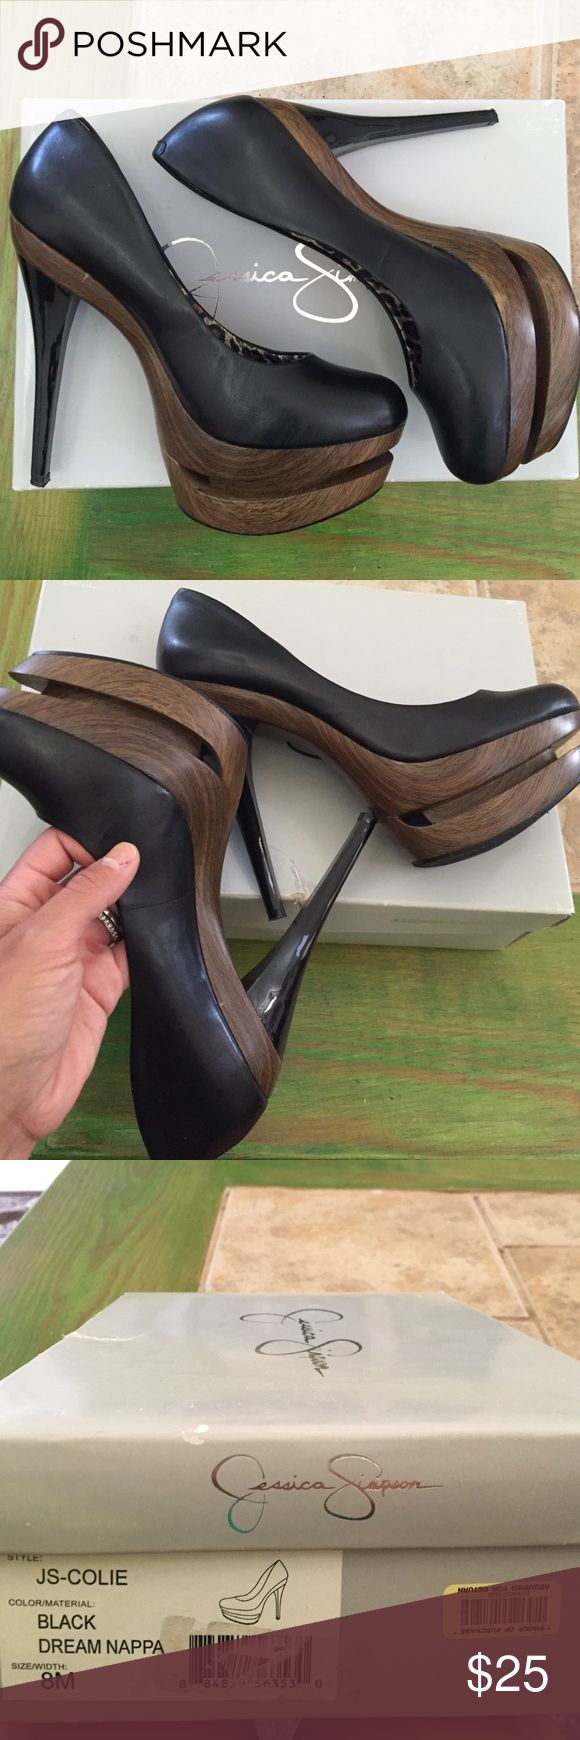 Jessica Simpson platform pumps Black pumps with psychedelic, faux wooden platforms. They have very few tiny spots reflecting wear but are in great condition otherwise! Your legs will look so long in these! Jessica Simpson Shoes Platforms